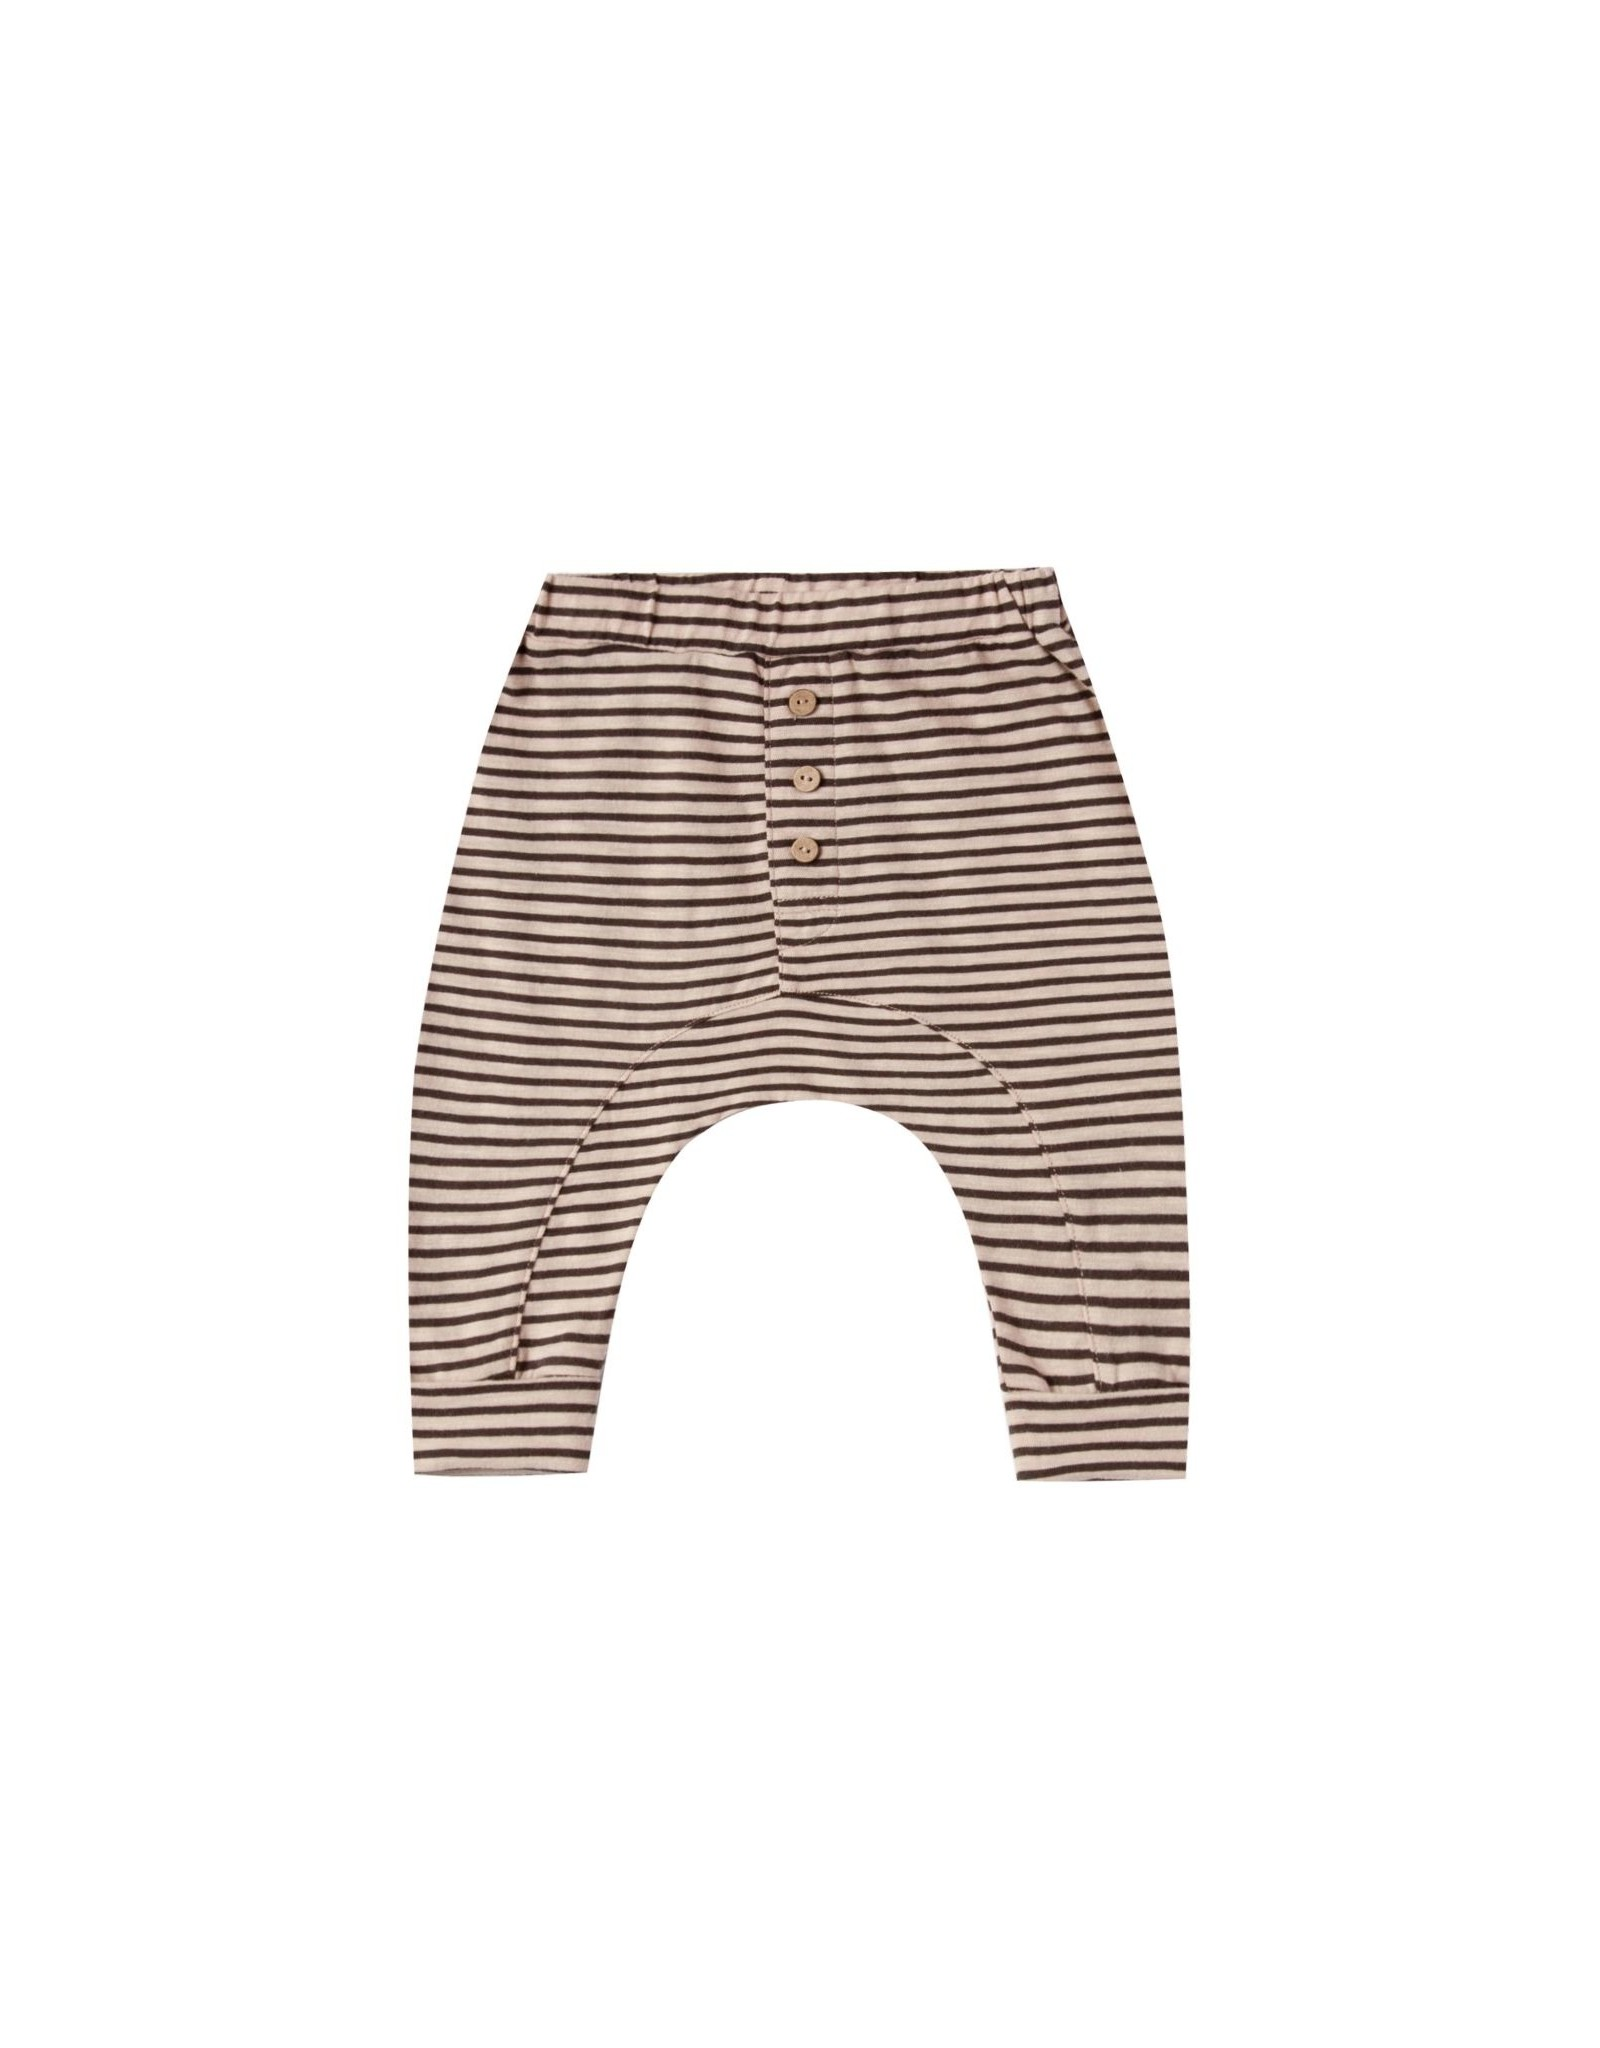 Rylee and Cru striped slub pant